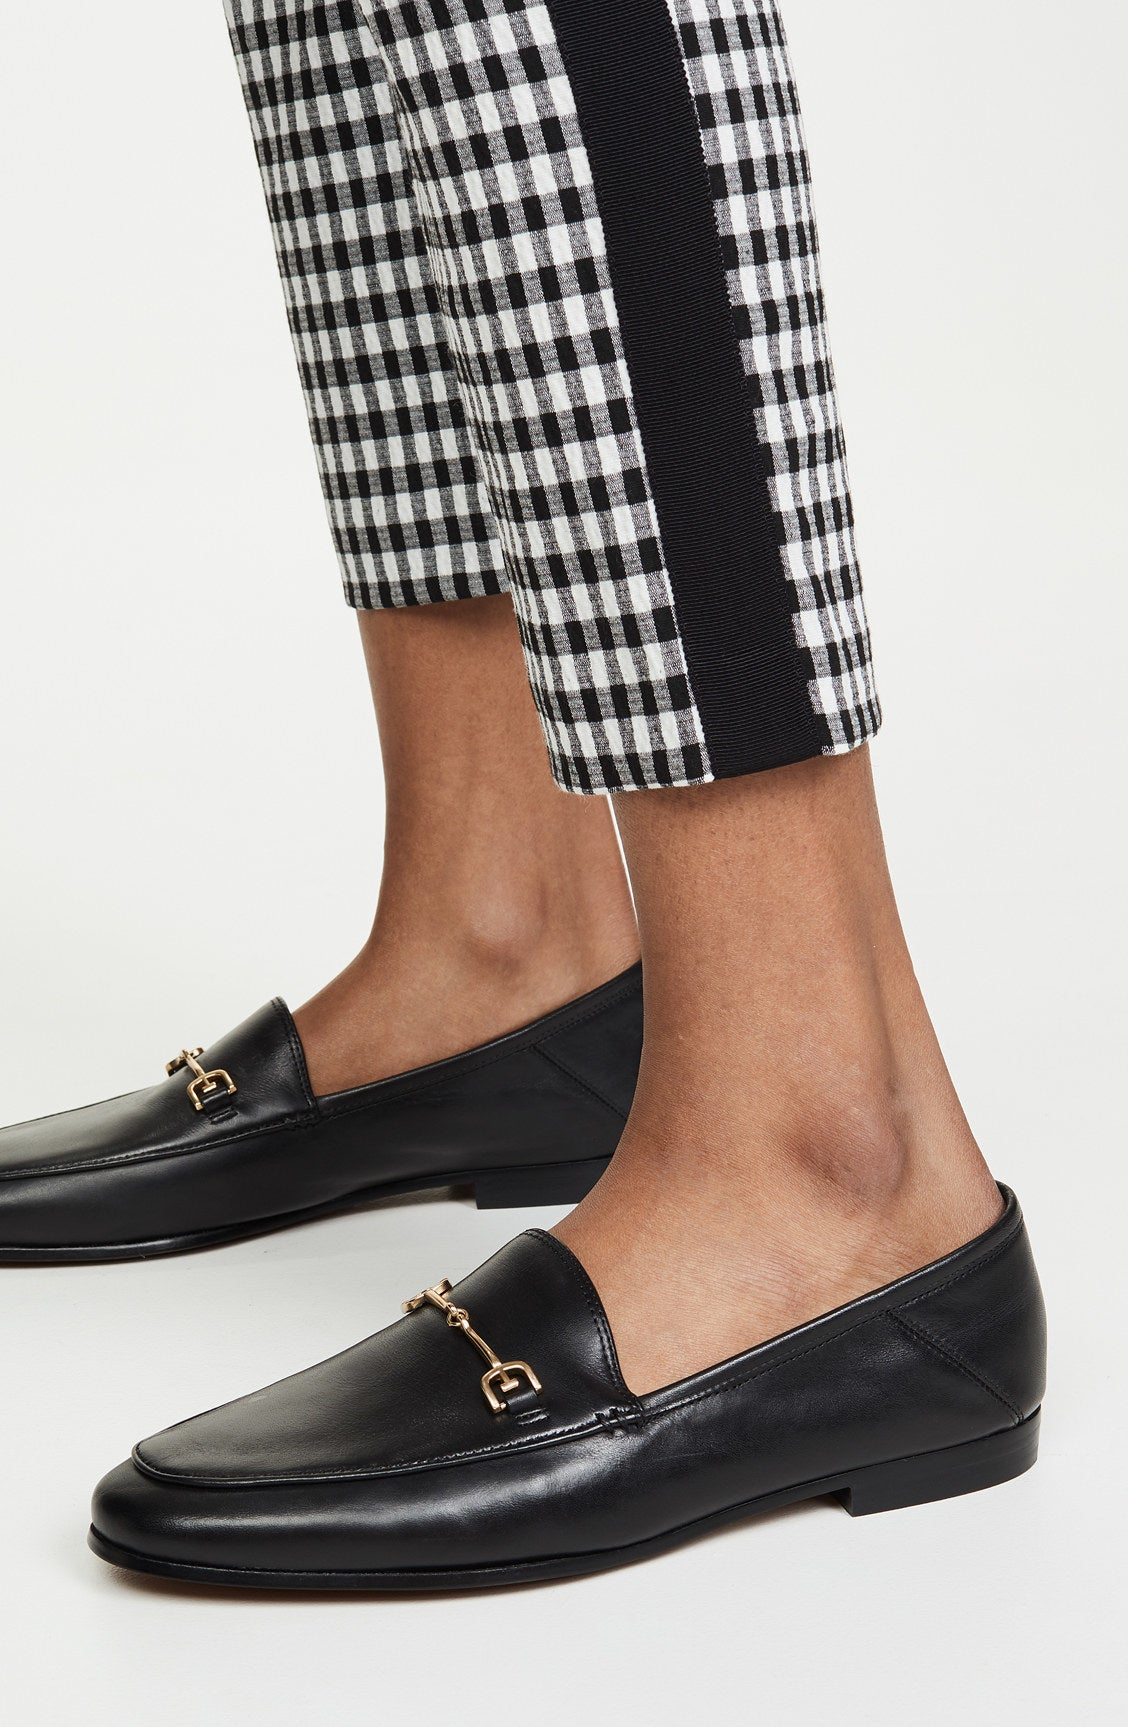 The loafers in black with a small gold metal bar across the top